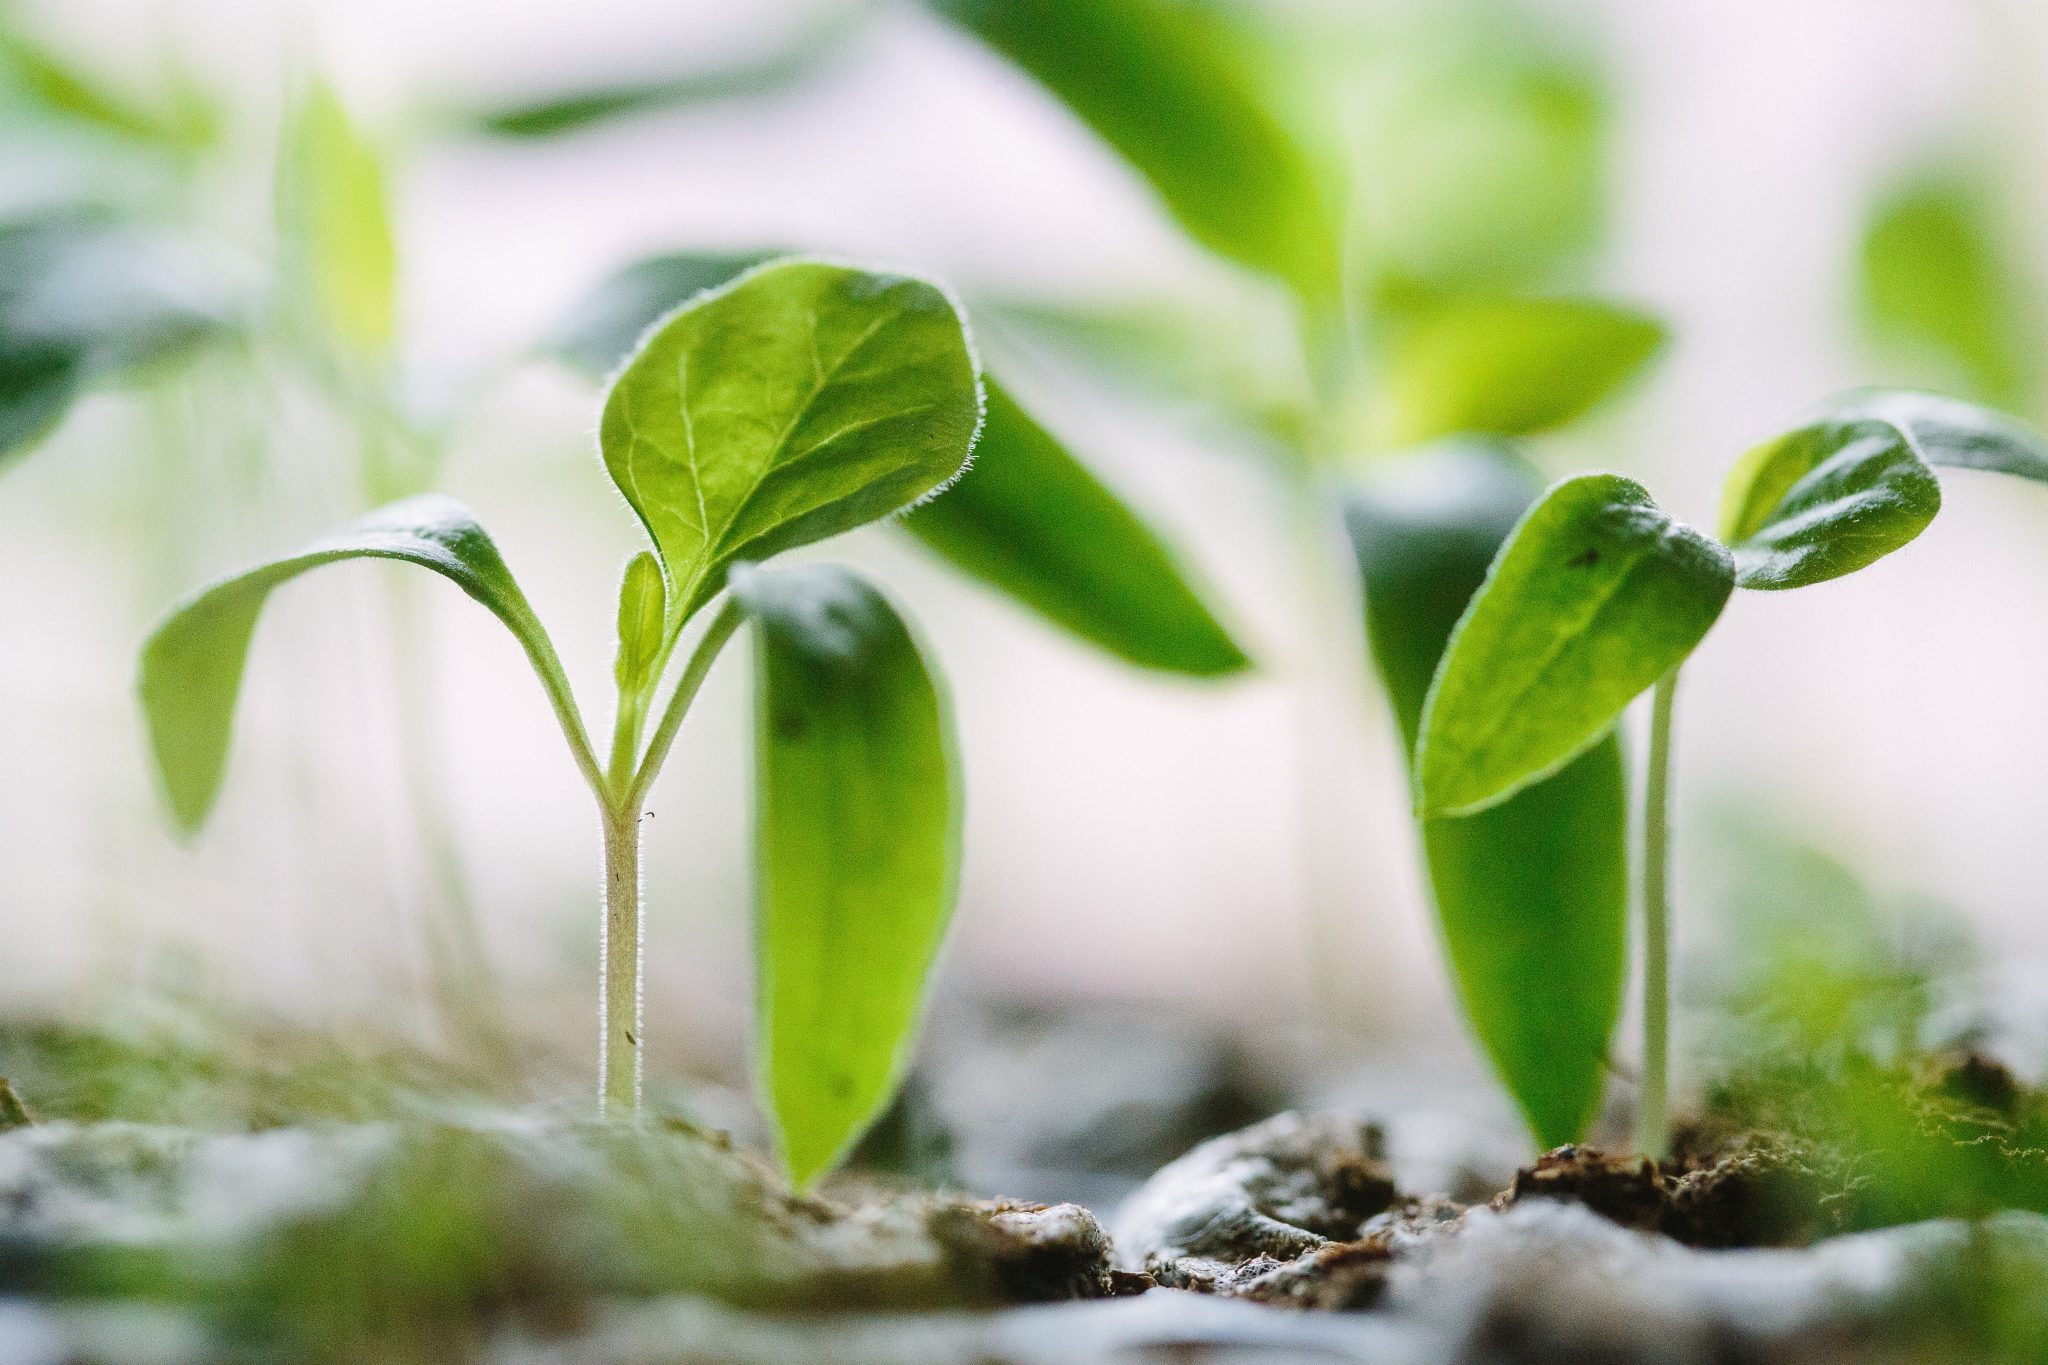 Thinning Our Garden: When We Need Room To Breathe & Grow